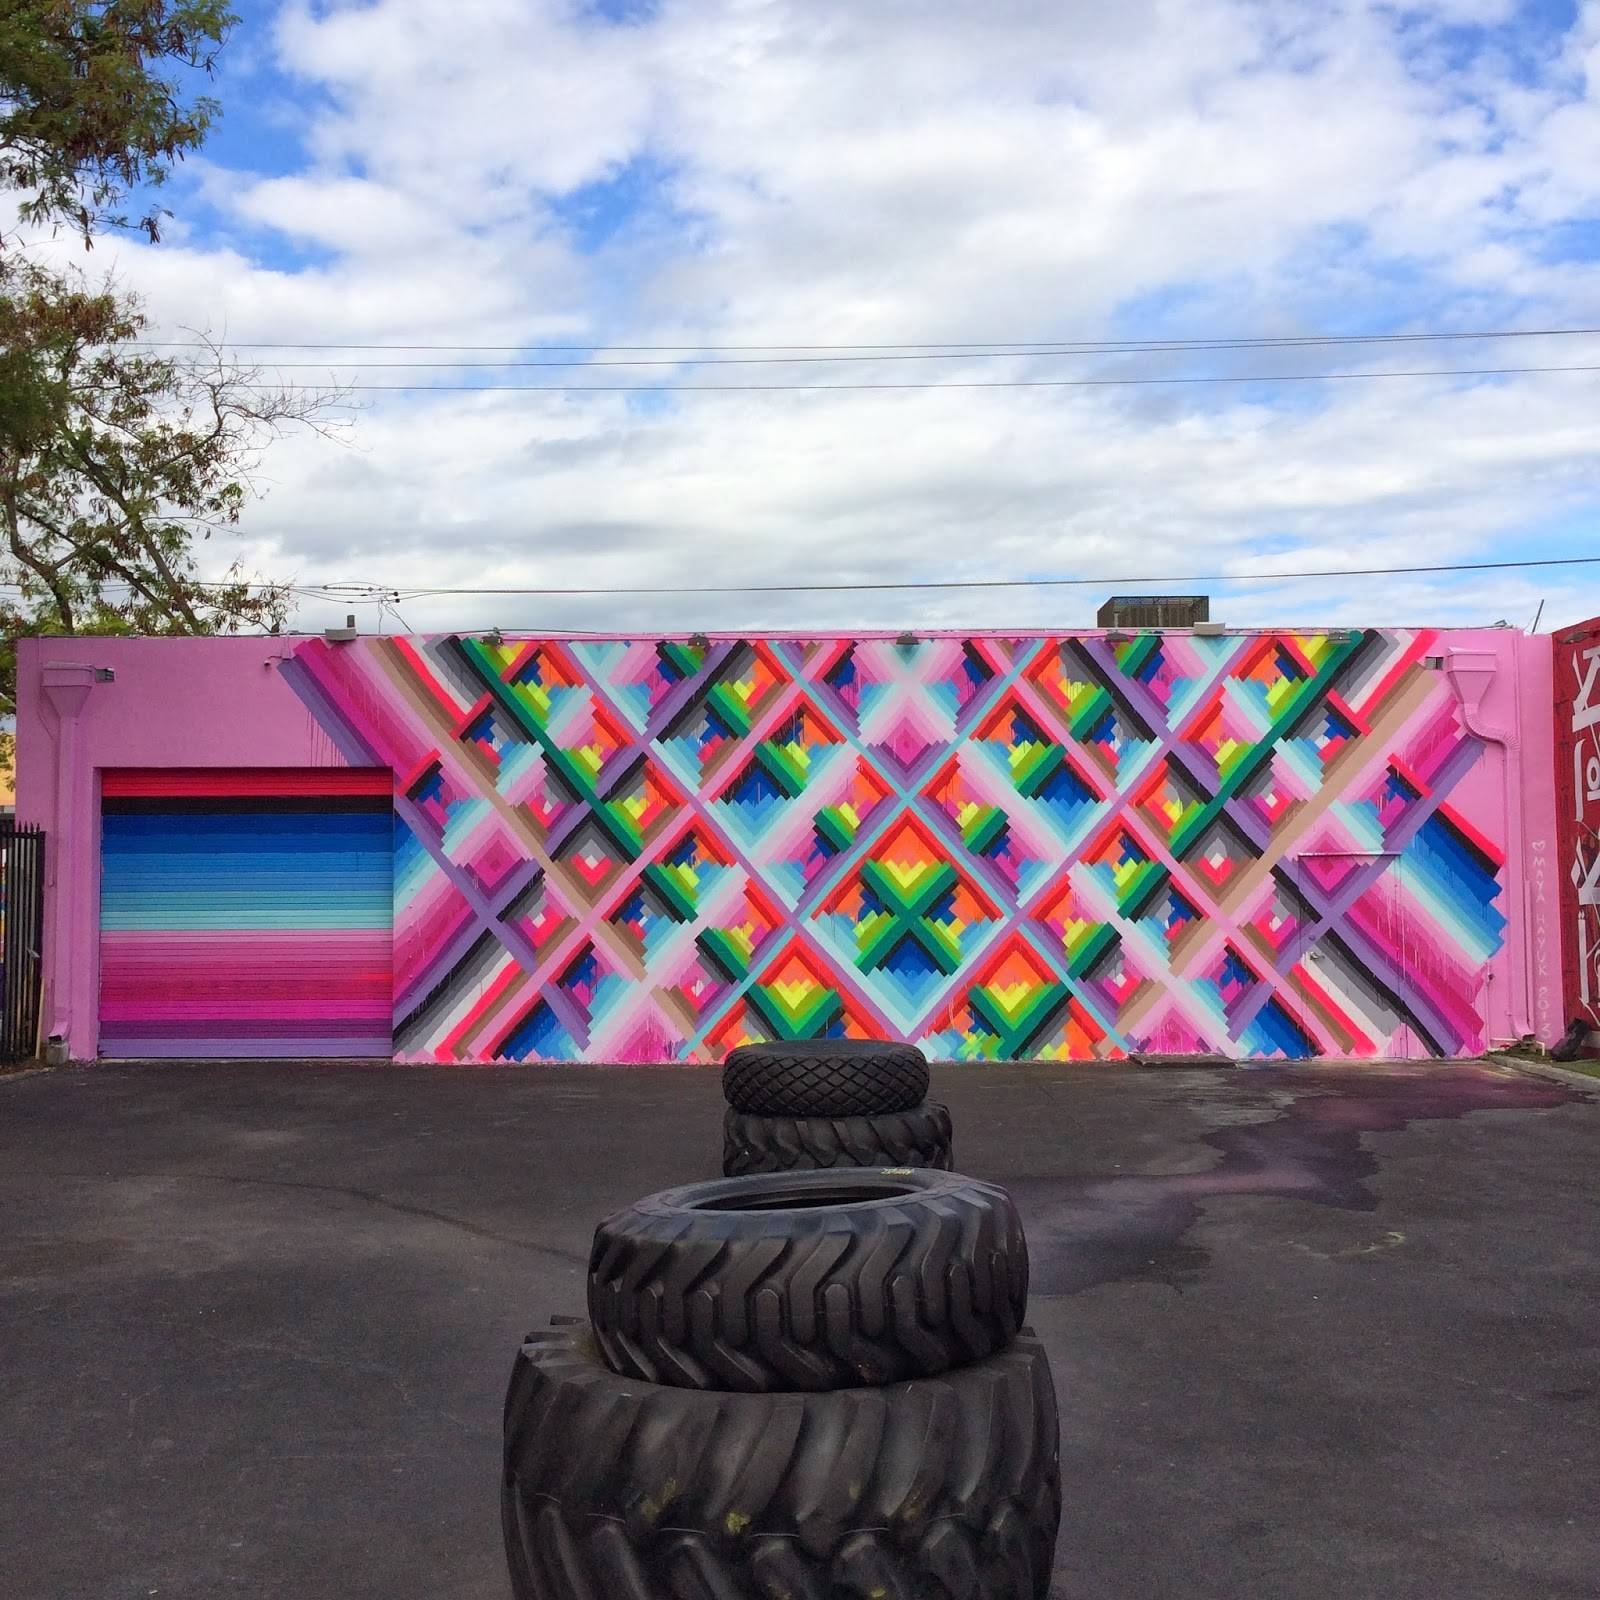 Maya Hayuk New Mural For Art Basel '13 – Wynwood Walls, Miami In Best And Newest Miami Wall Art (View 11 of 20)